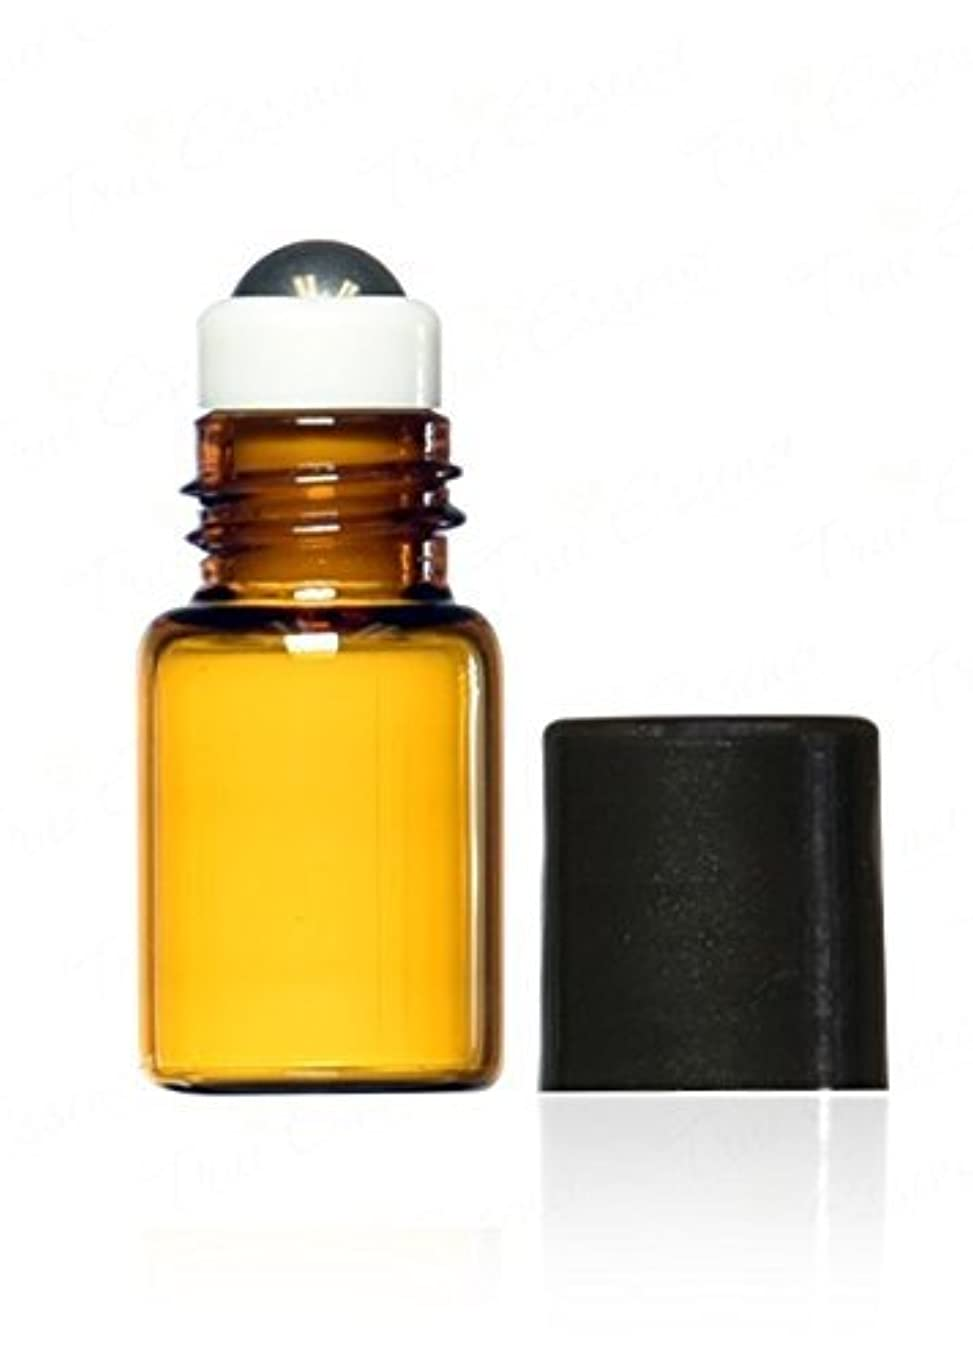 突然判定冷凍庫True Essence 3 ml, 3/4 Dram Amber Glass Mini Roll-on Glass Bottles with Metal Roller Balls - Refillable Aromatherapy...